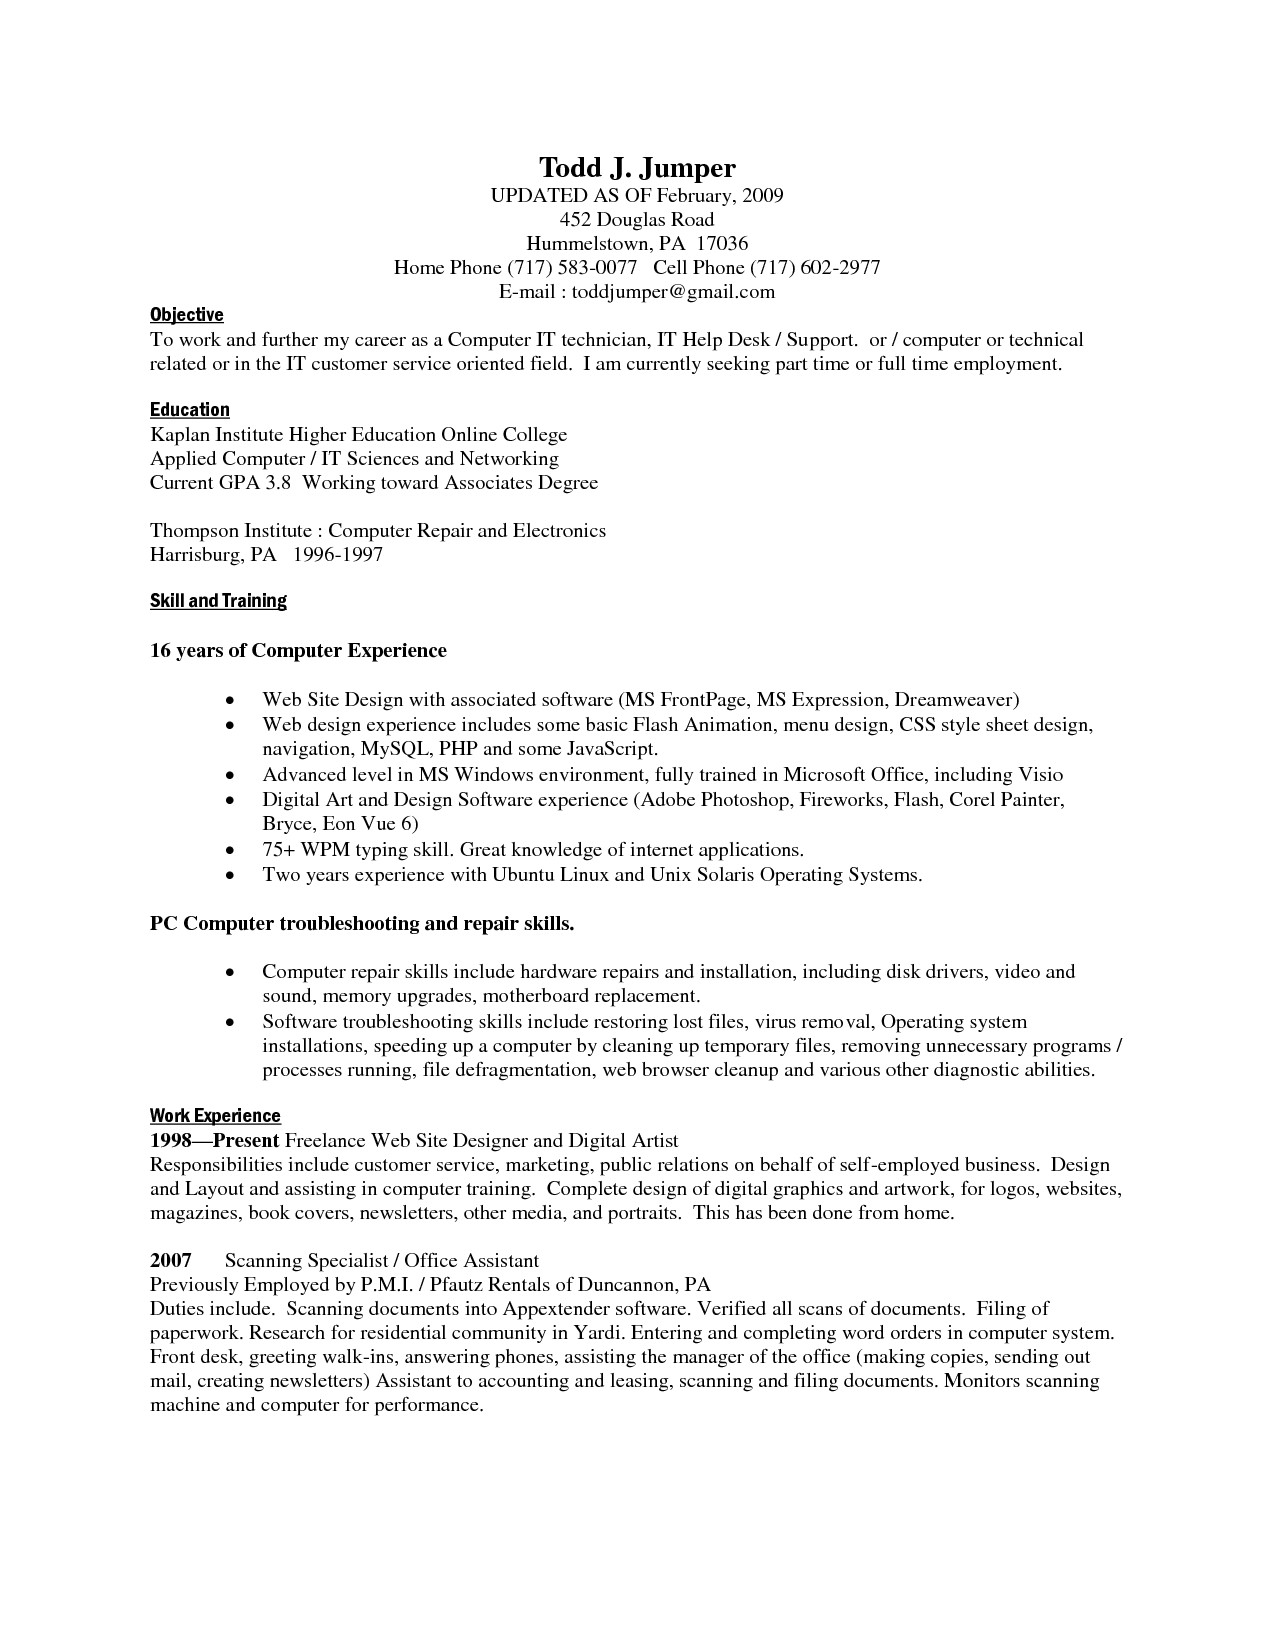 computer skill resume Fieldstation • Aceeducation